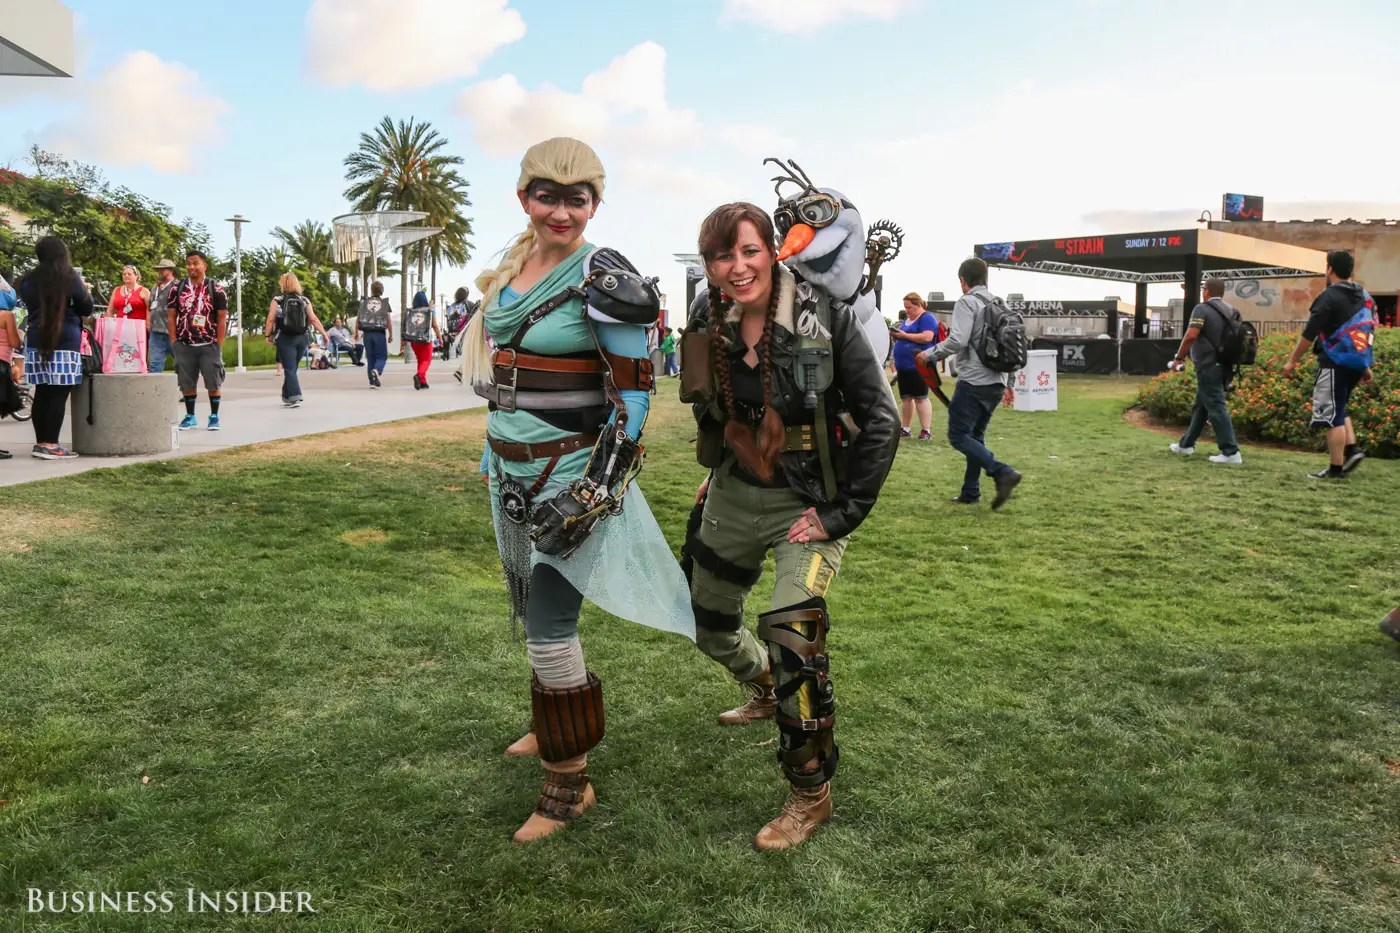 Anna and Elsa dress for battle on the Fury Road in this creative